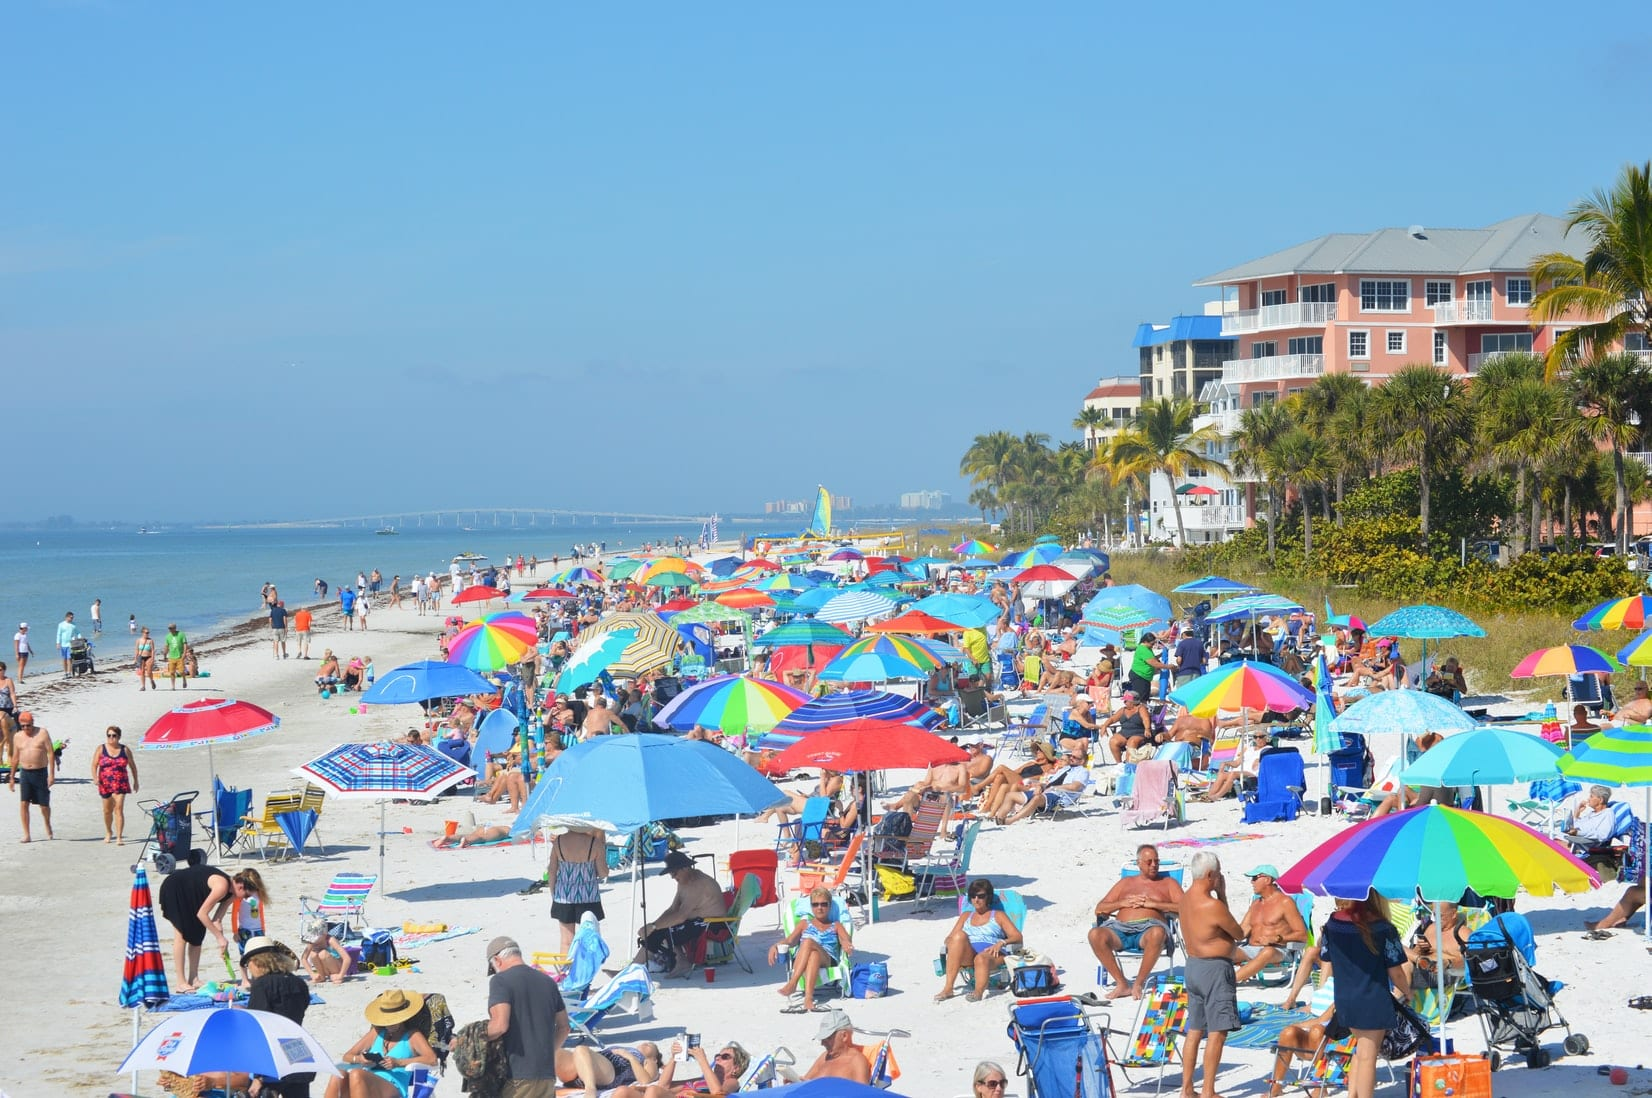 tourists on the beach in Florida